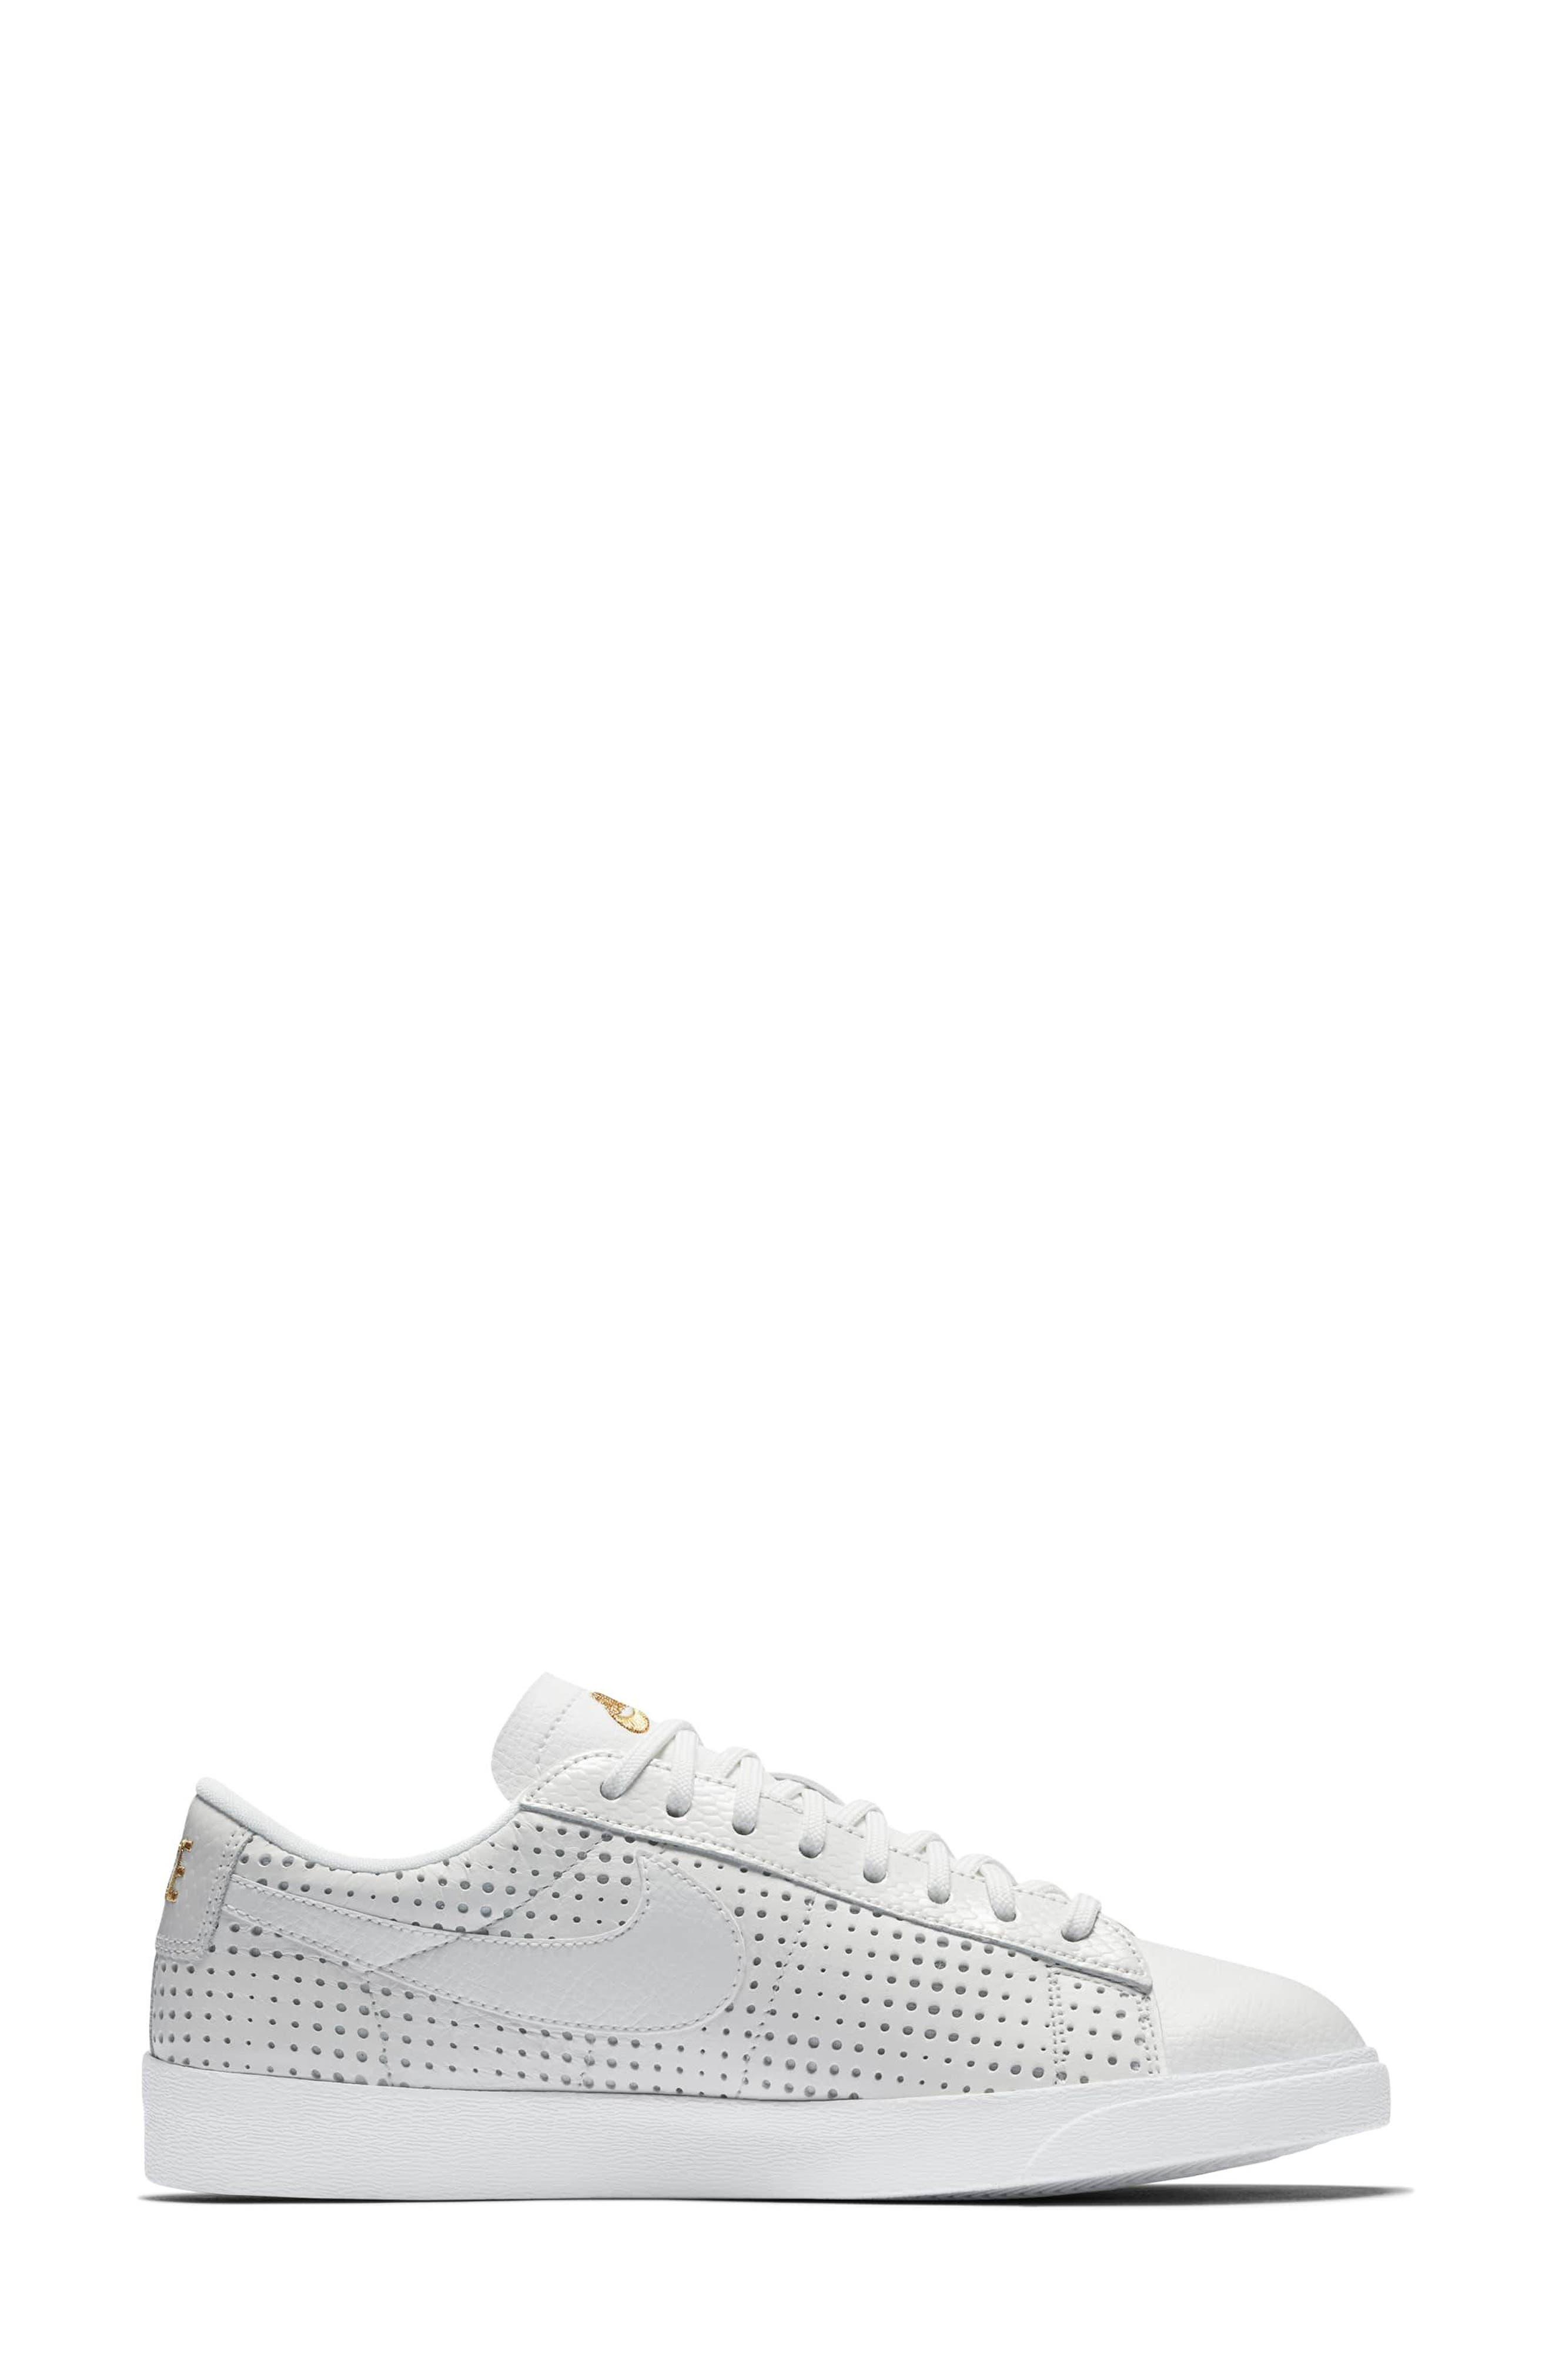 Main Image - Nike Blazer Low Top Sneaker SE (Women)